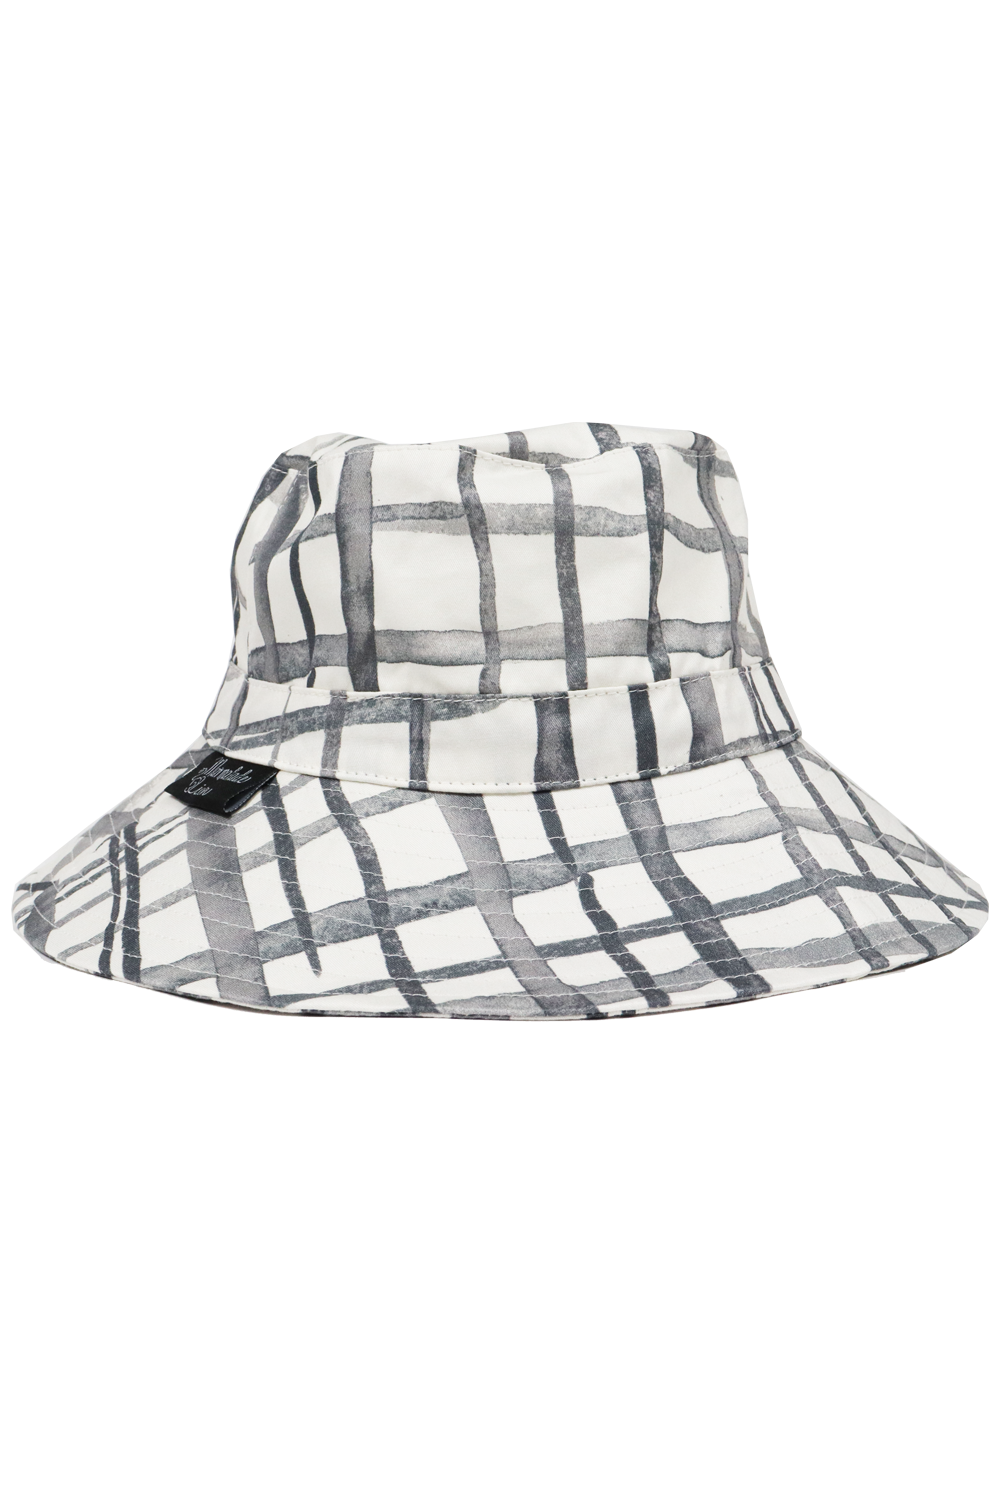 Marmalade Lion Sun Hat - Swedish Check